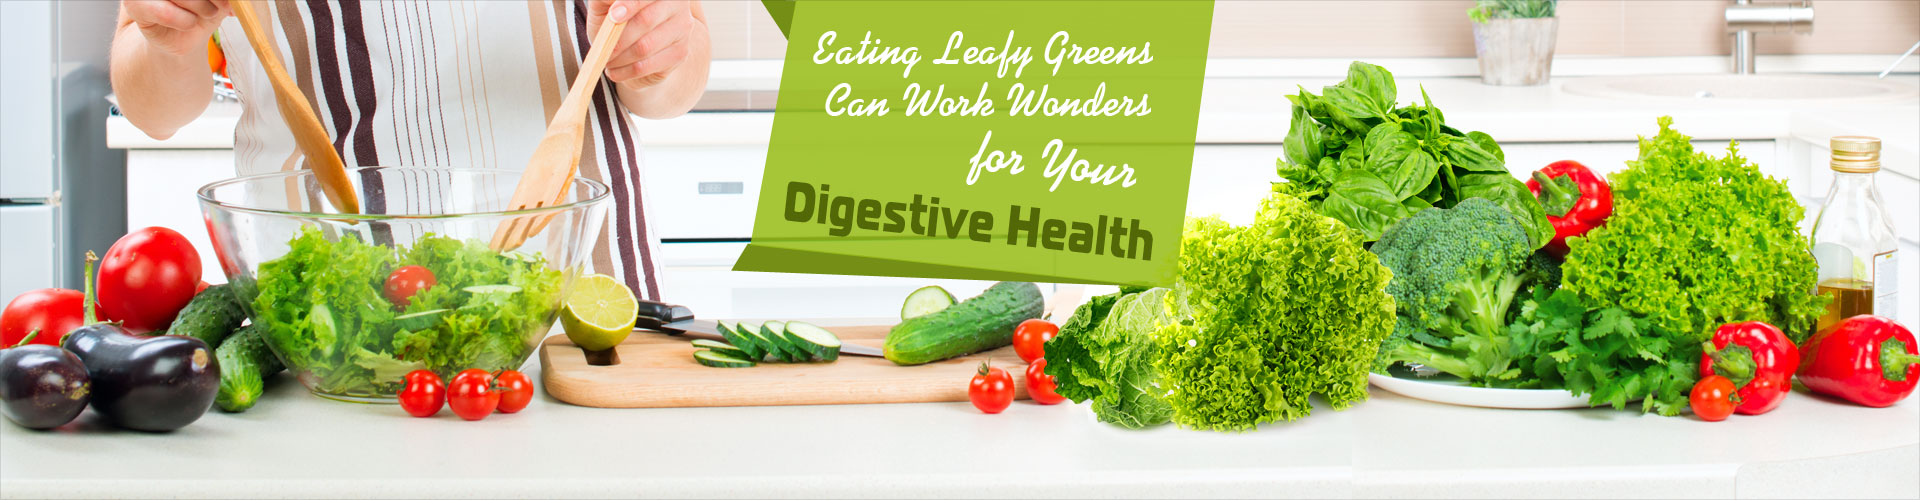 Eating Leafy Greens Can Work Wonders for Your Digestive Health